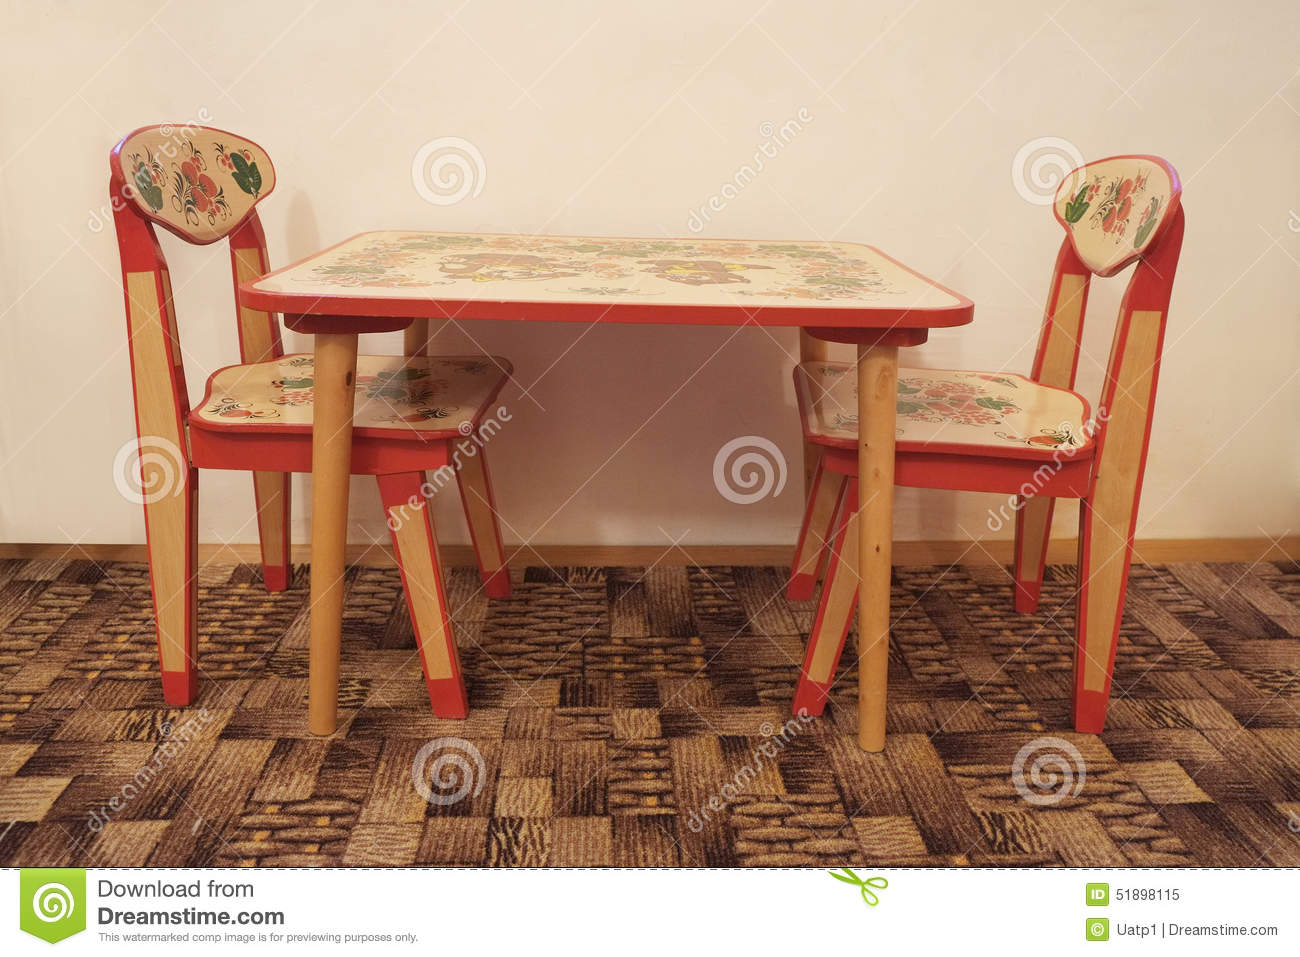 small wooden table and two chairs stock image image of isolated color 51898115. Black Bedroom Furniture Sets. Home Design Ideas